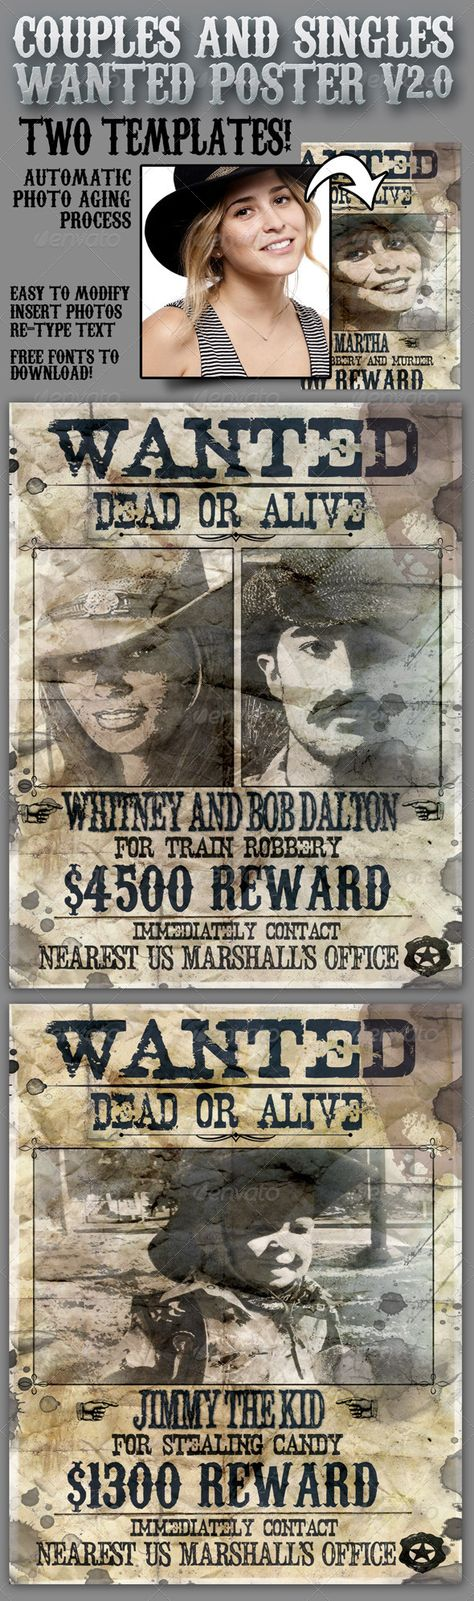 Wanted Poster 85x11 for Singles and Couples V20 - free wanted poster template download